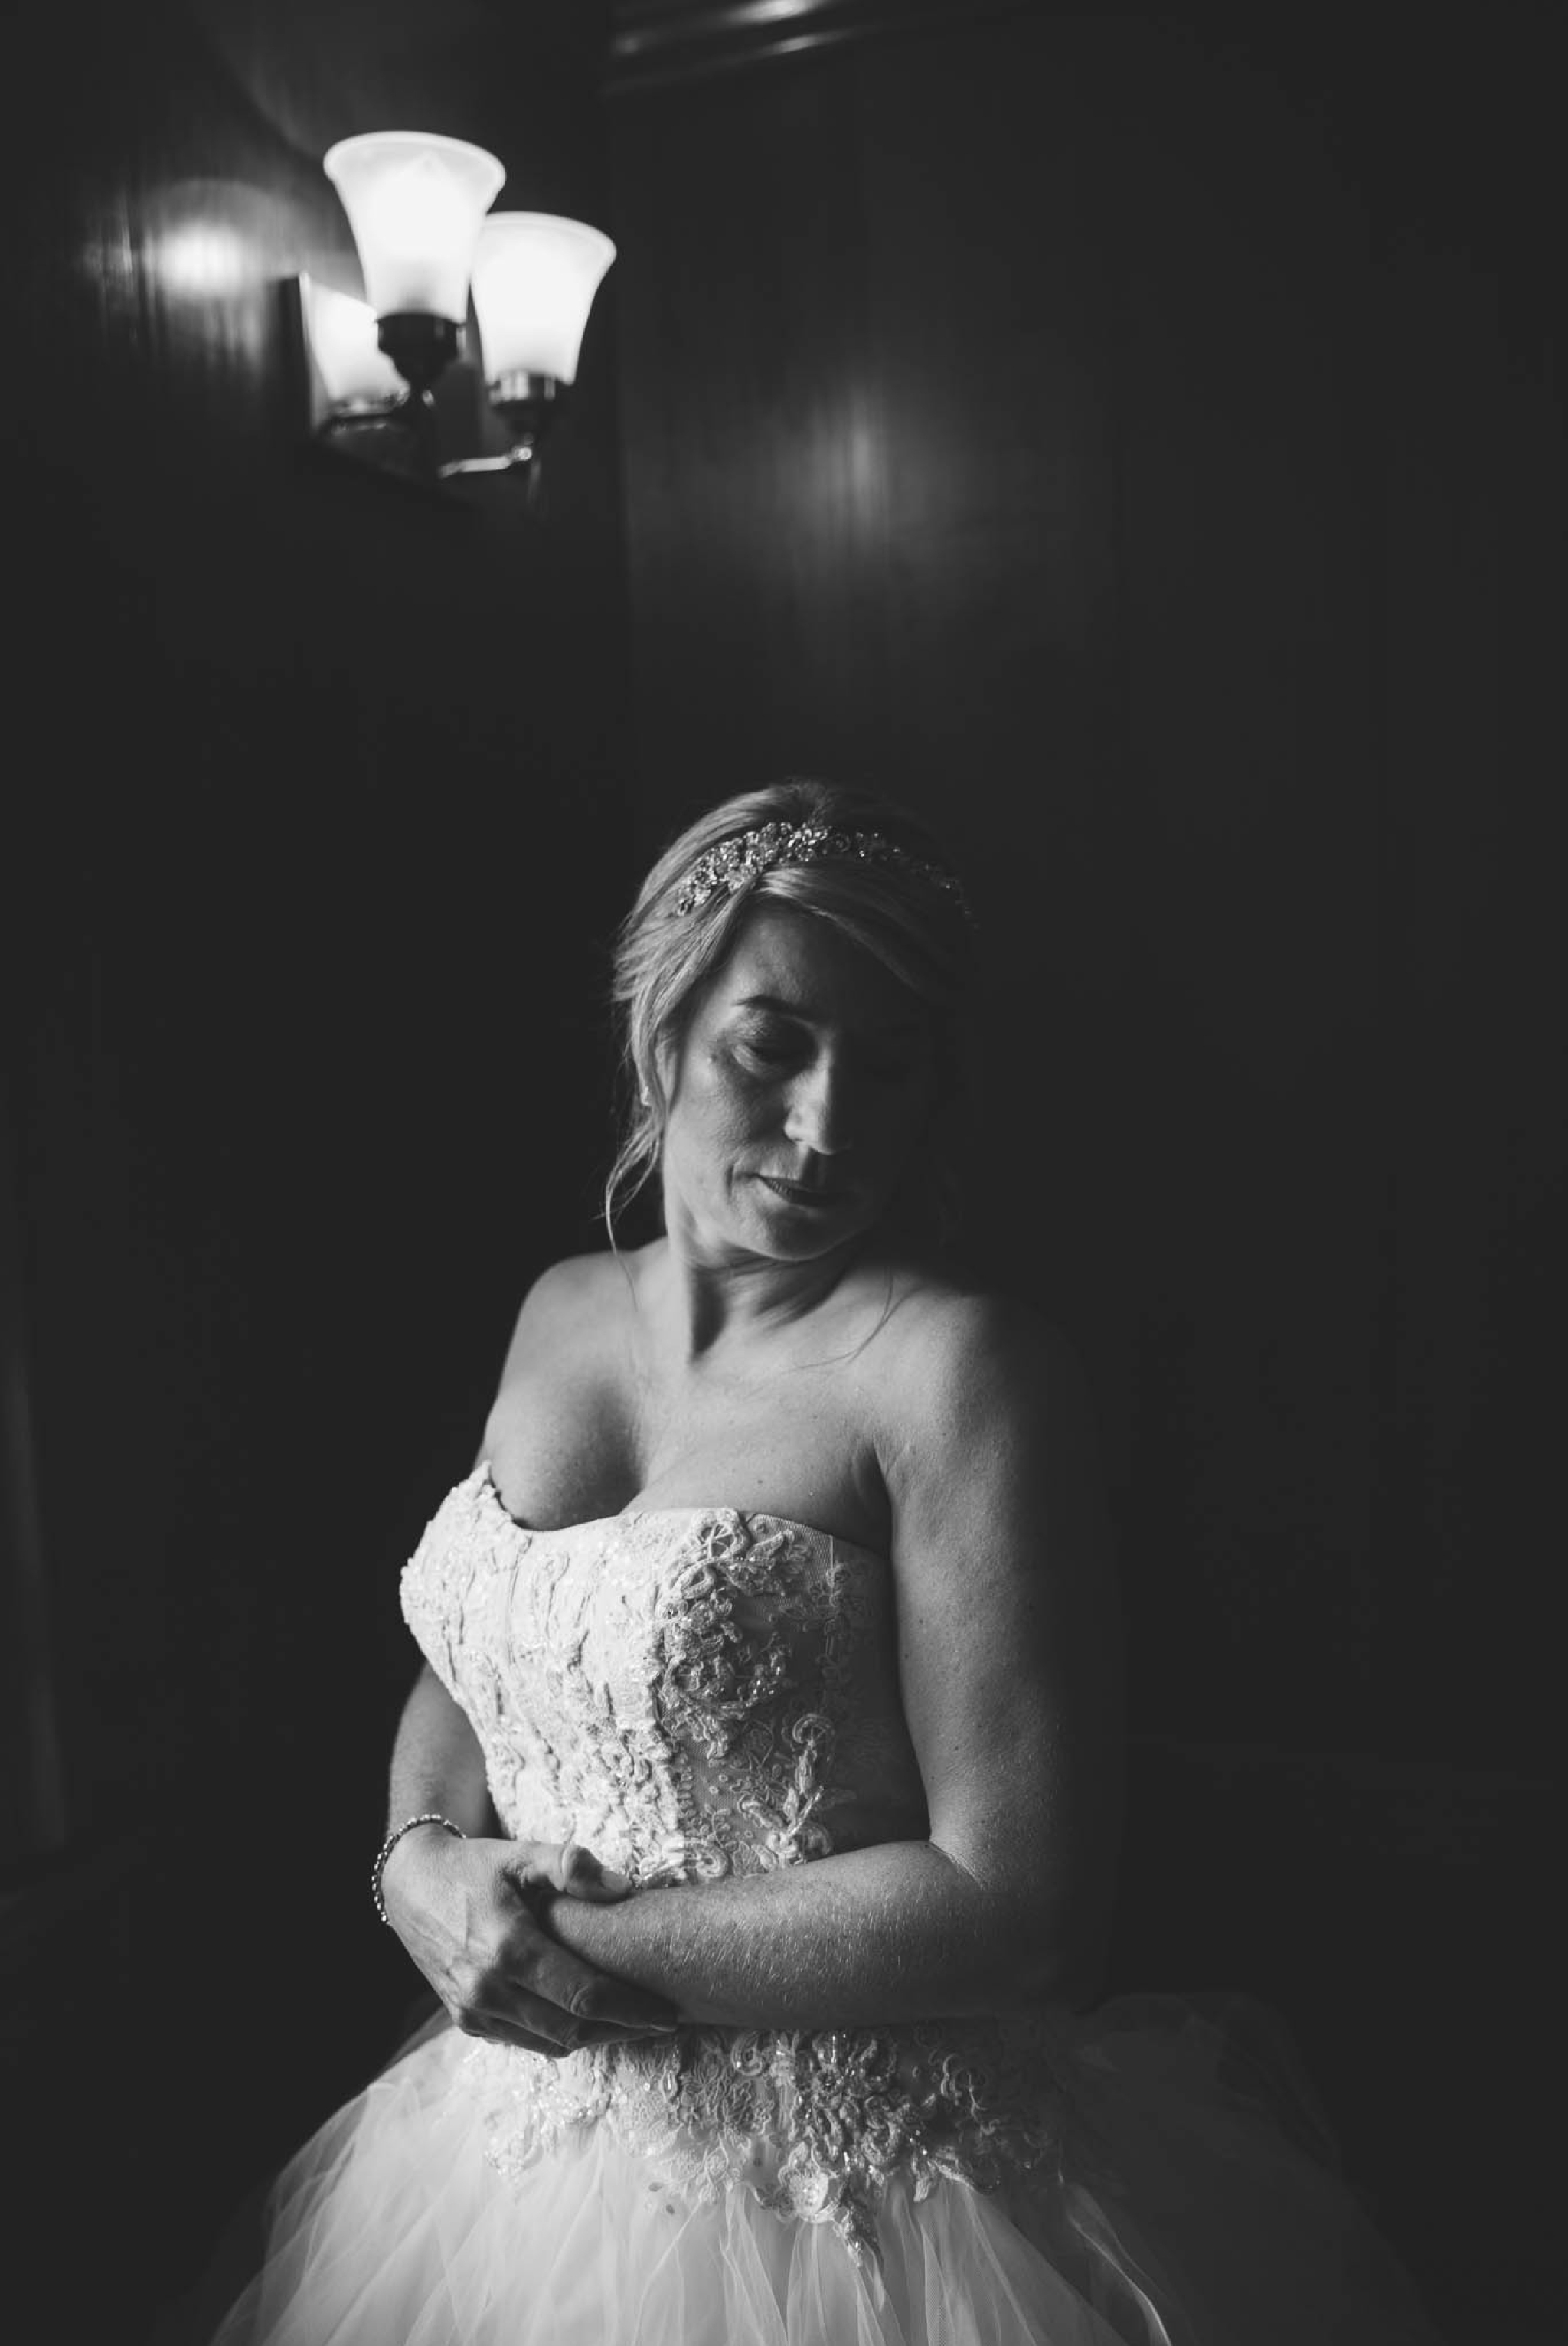 Bridal Portrait in black and white Dona + Doug - MacGregor Downs Country Club in Cary, NC - Raleigh Wedding Photographer